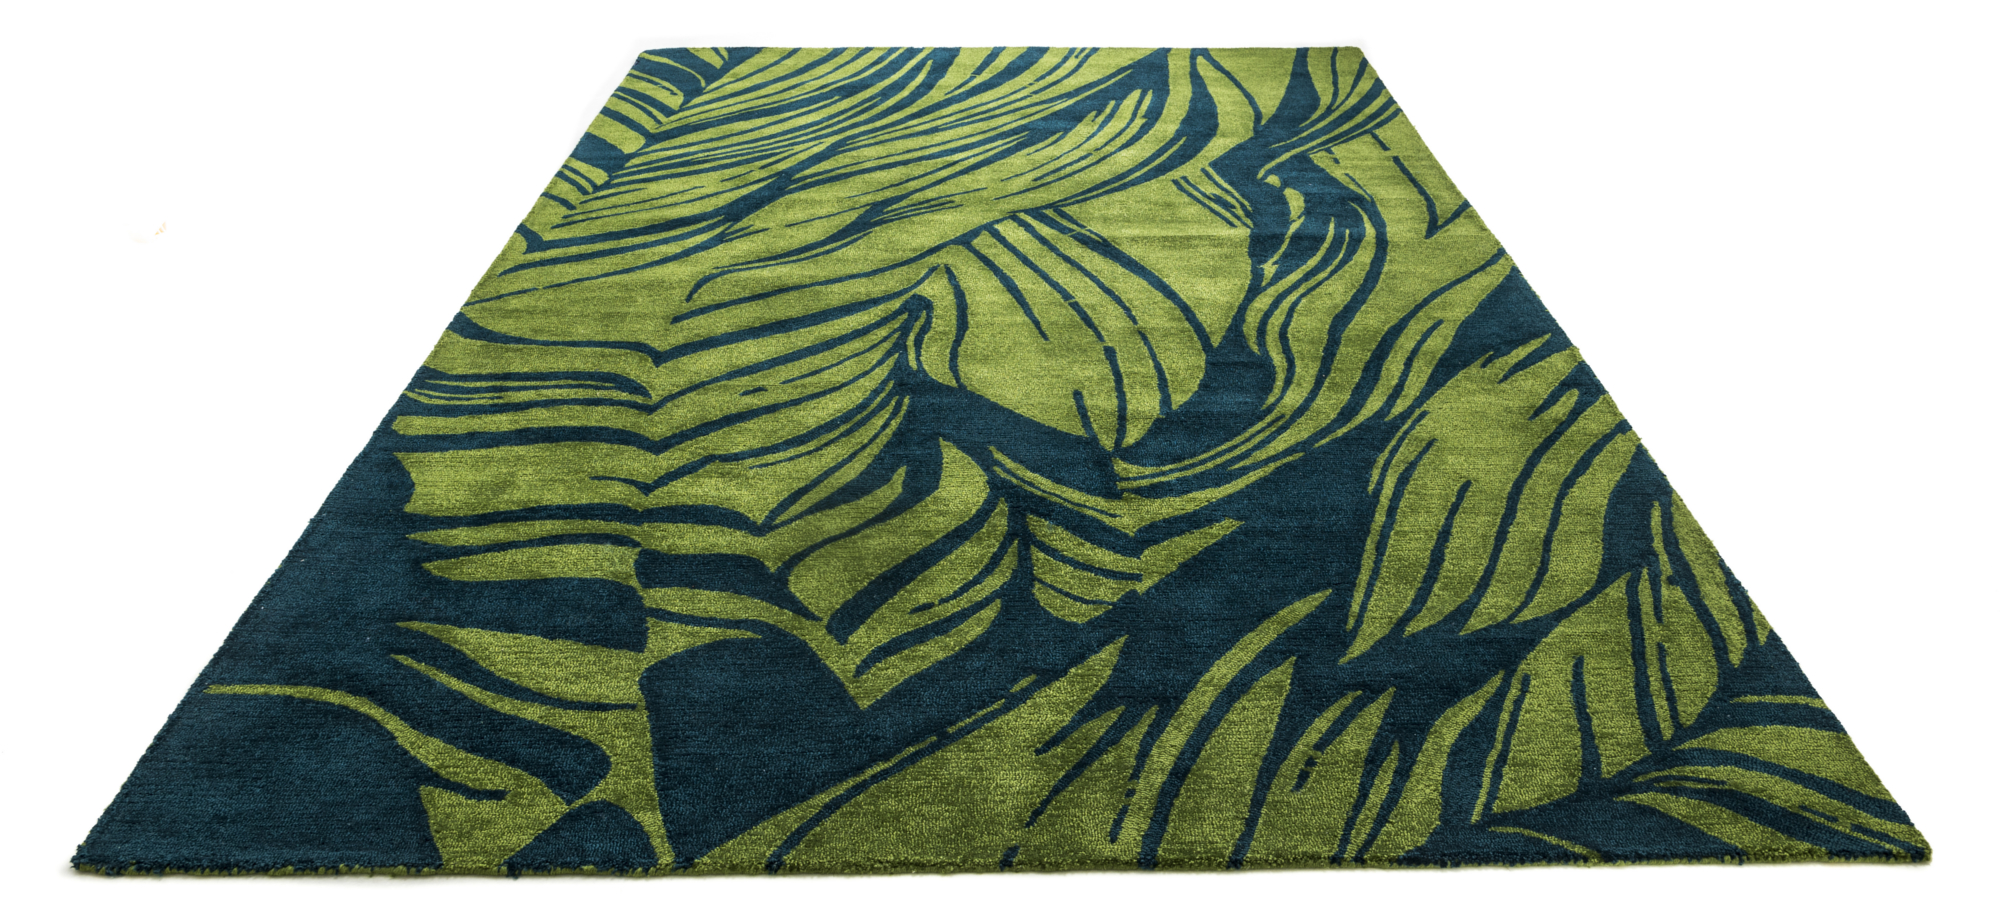 Green sustainable rug